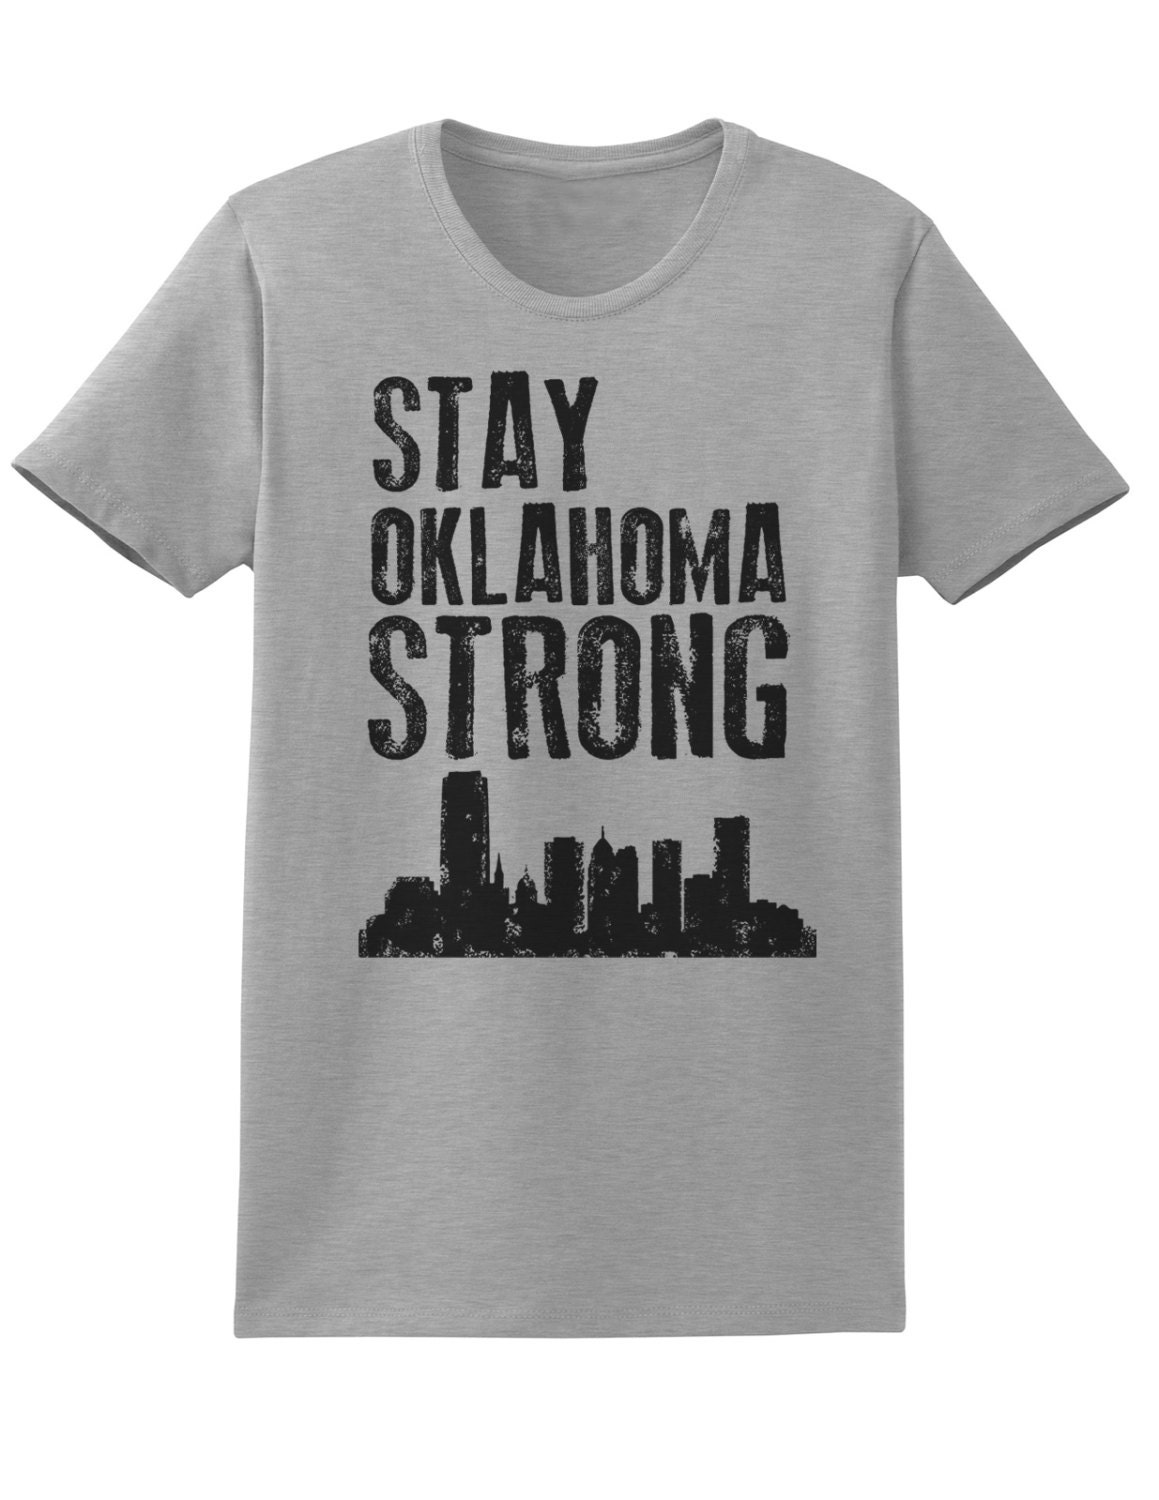 Ladies Stay Oklahoma Strong T-shirt